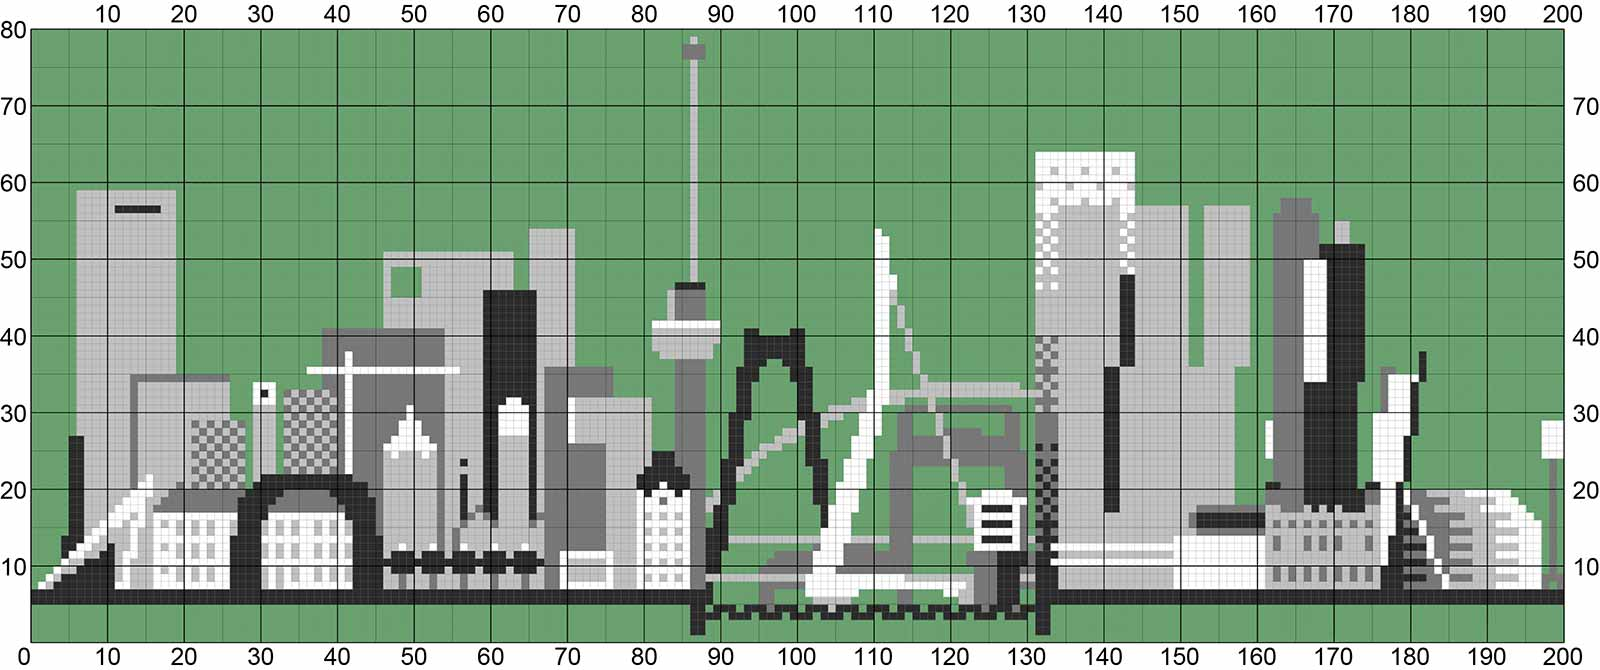 Knitting pattern 200 x 80 loops in five colors of the Rotterdam skyline with the city's most important buildings and bridges